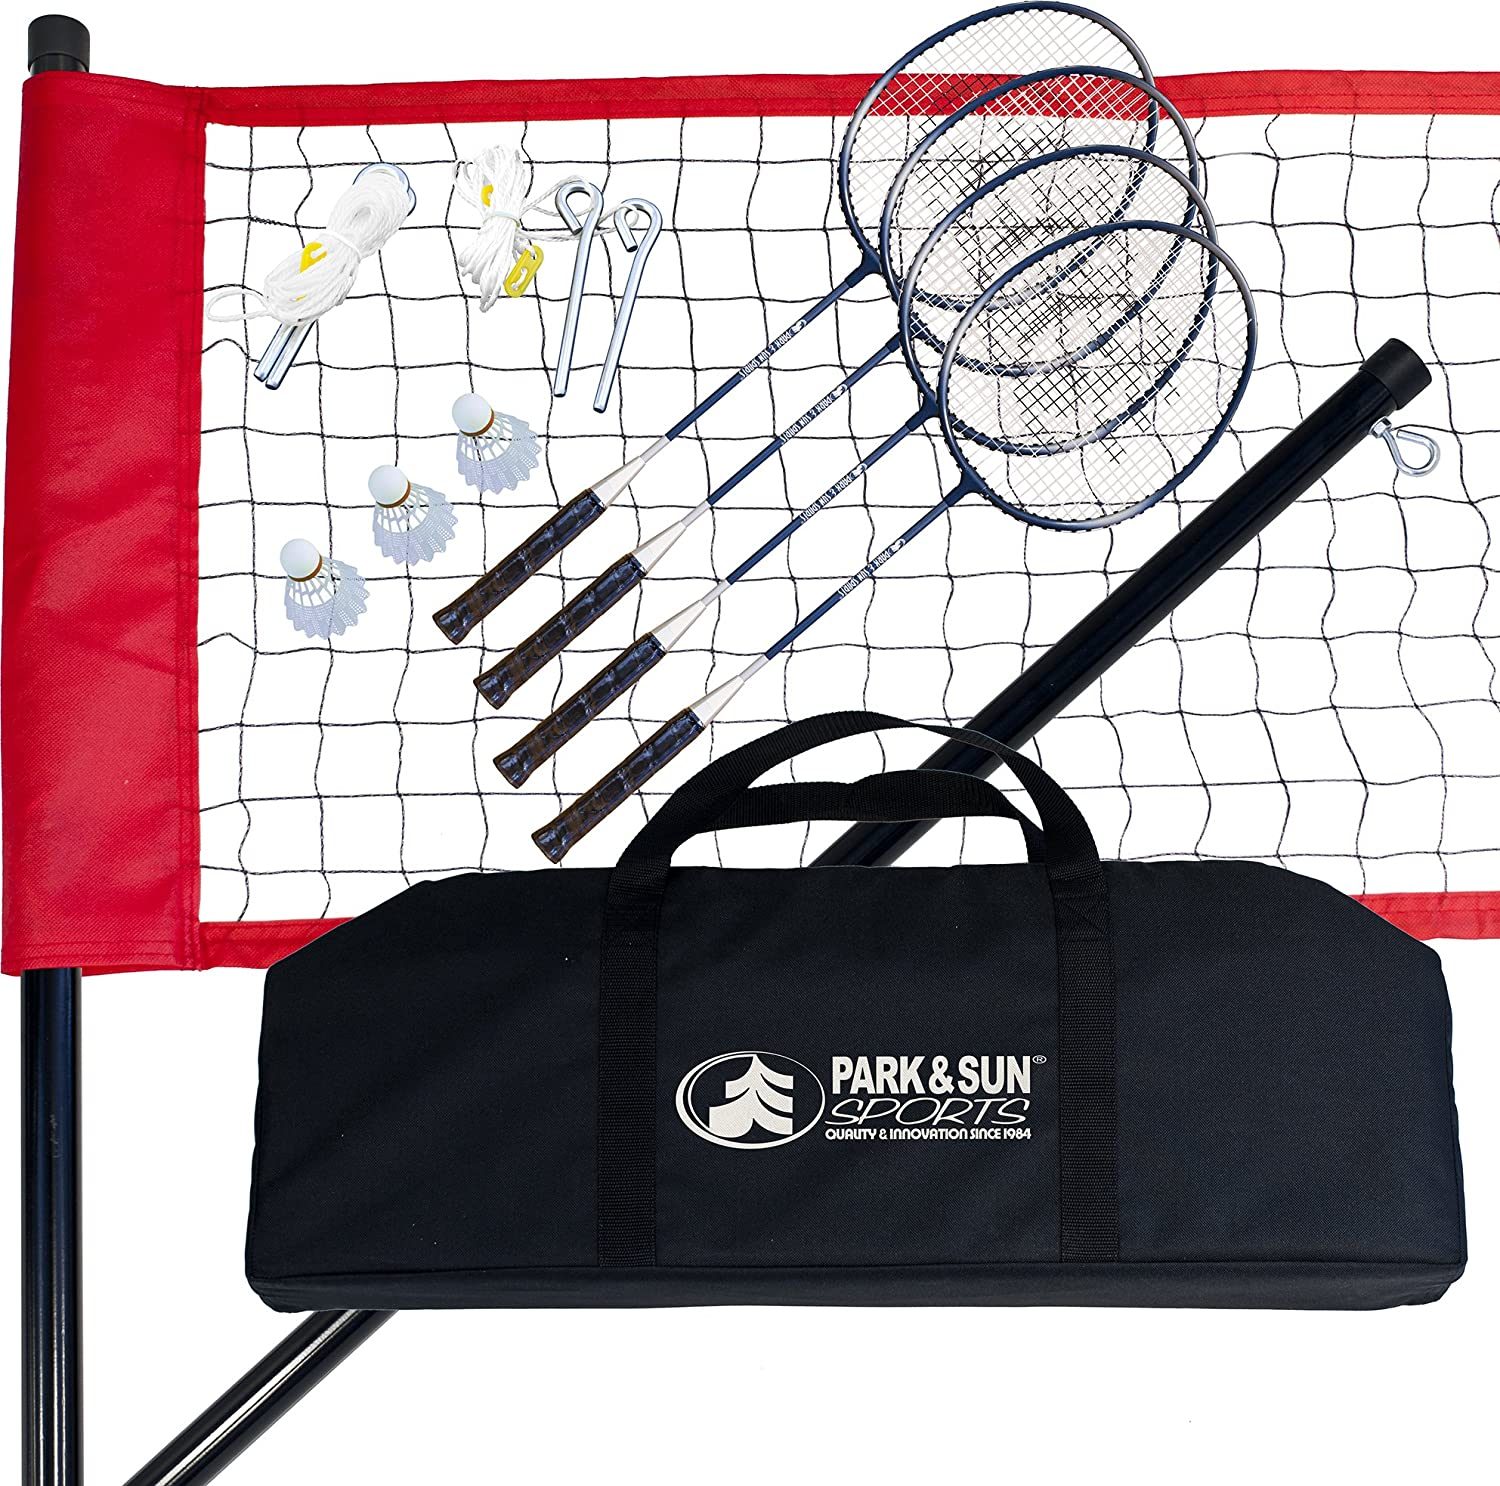 Park & Sun Sports Portable Outdoor Badminton Net System with Carrying Bag and Accessories: Sport Series BM-SPORT-A